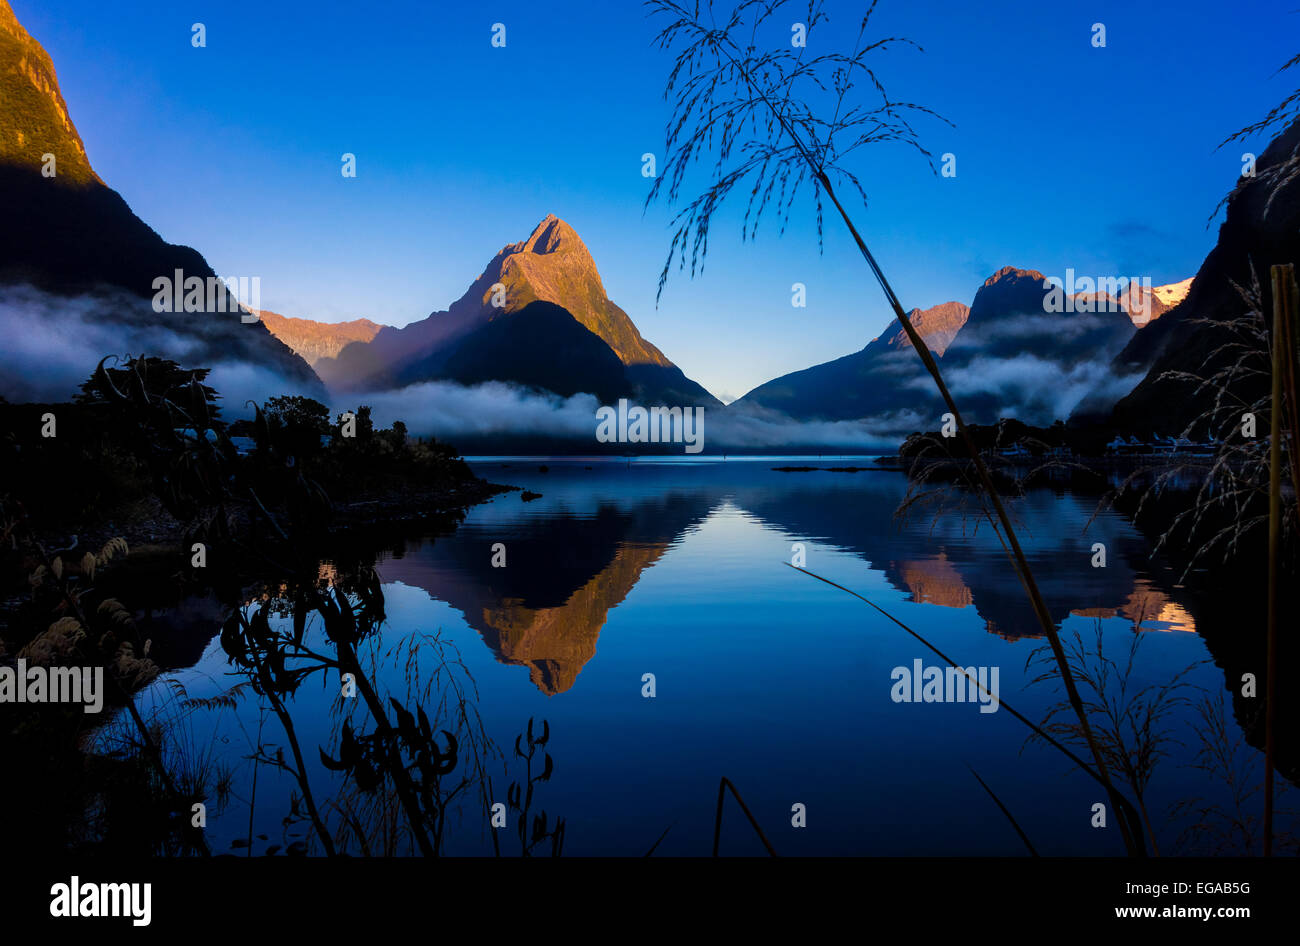 New Zealand Milford Sound with Mitre Peak in Fiordland National Park New Zealand at dawn Stock Photo